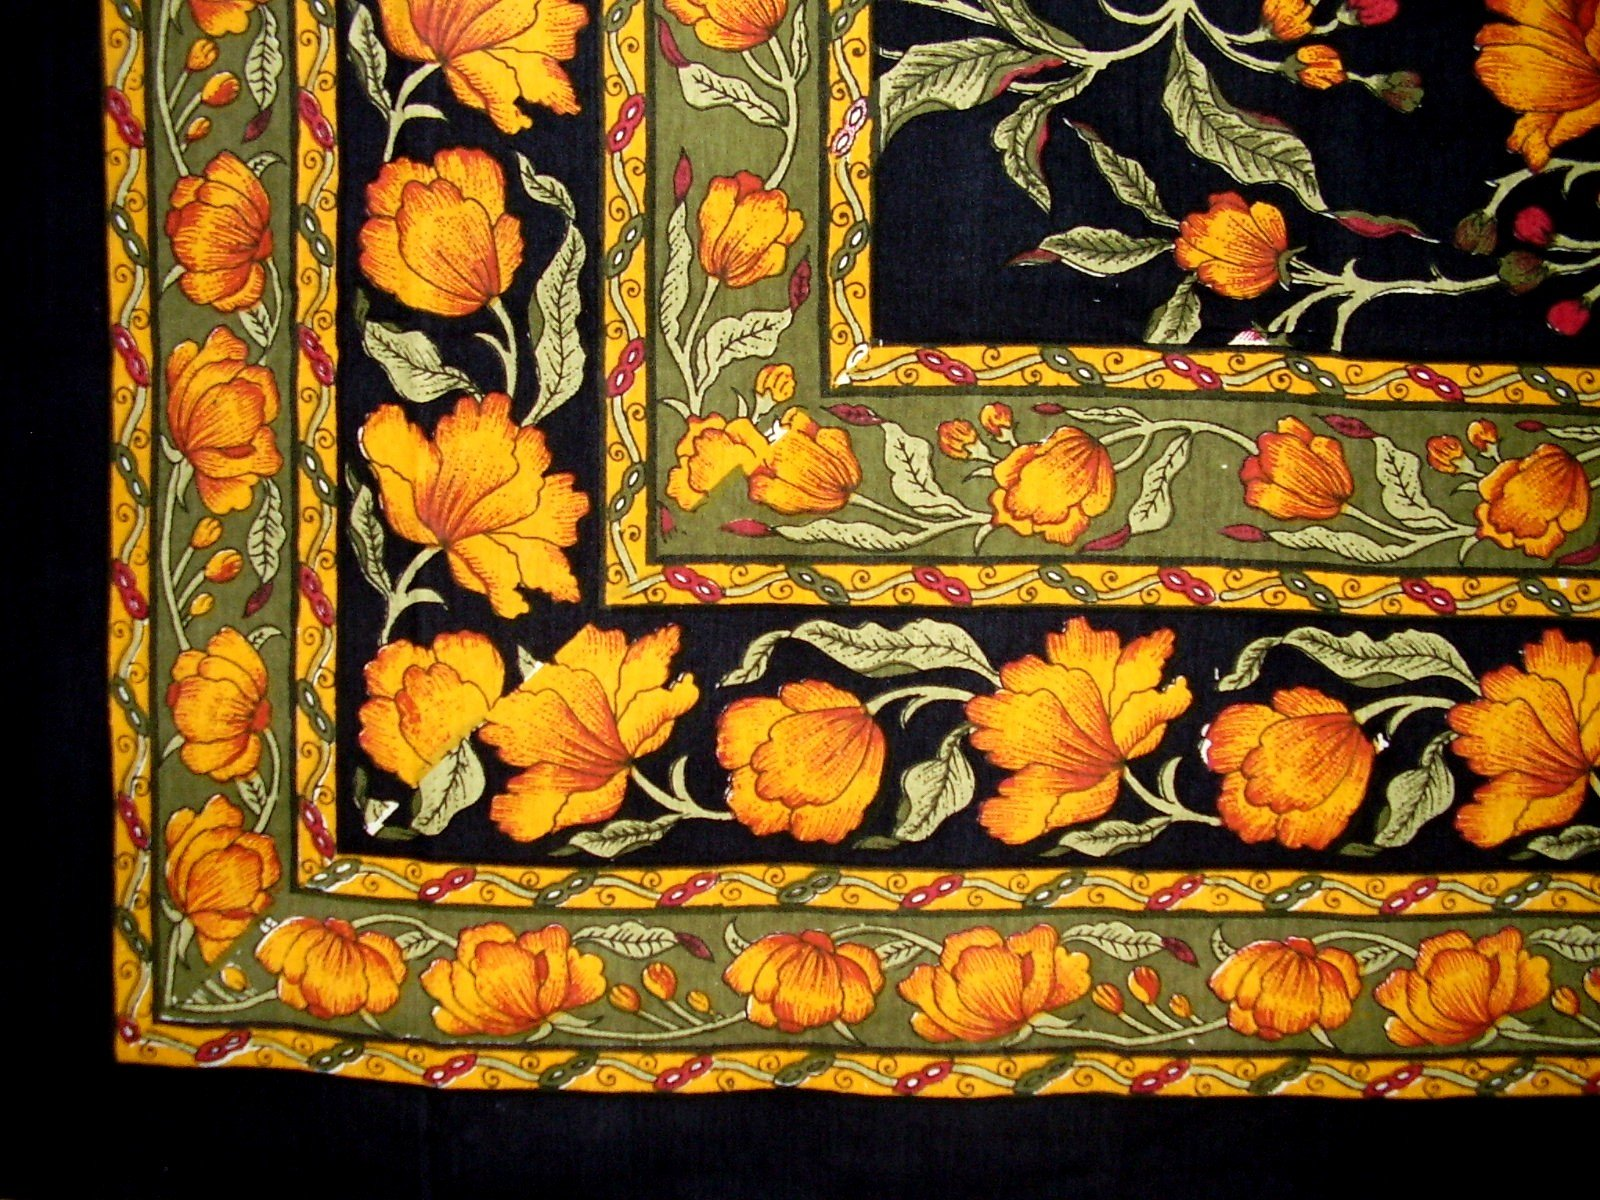 India Arts French Floral Square Cotton Tablecloth 60'' x 60'' Amber on Black by India Arts (Image #2)